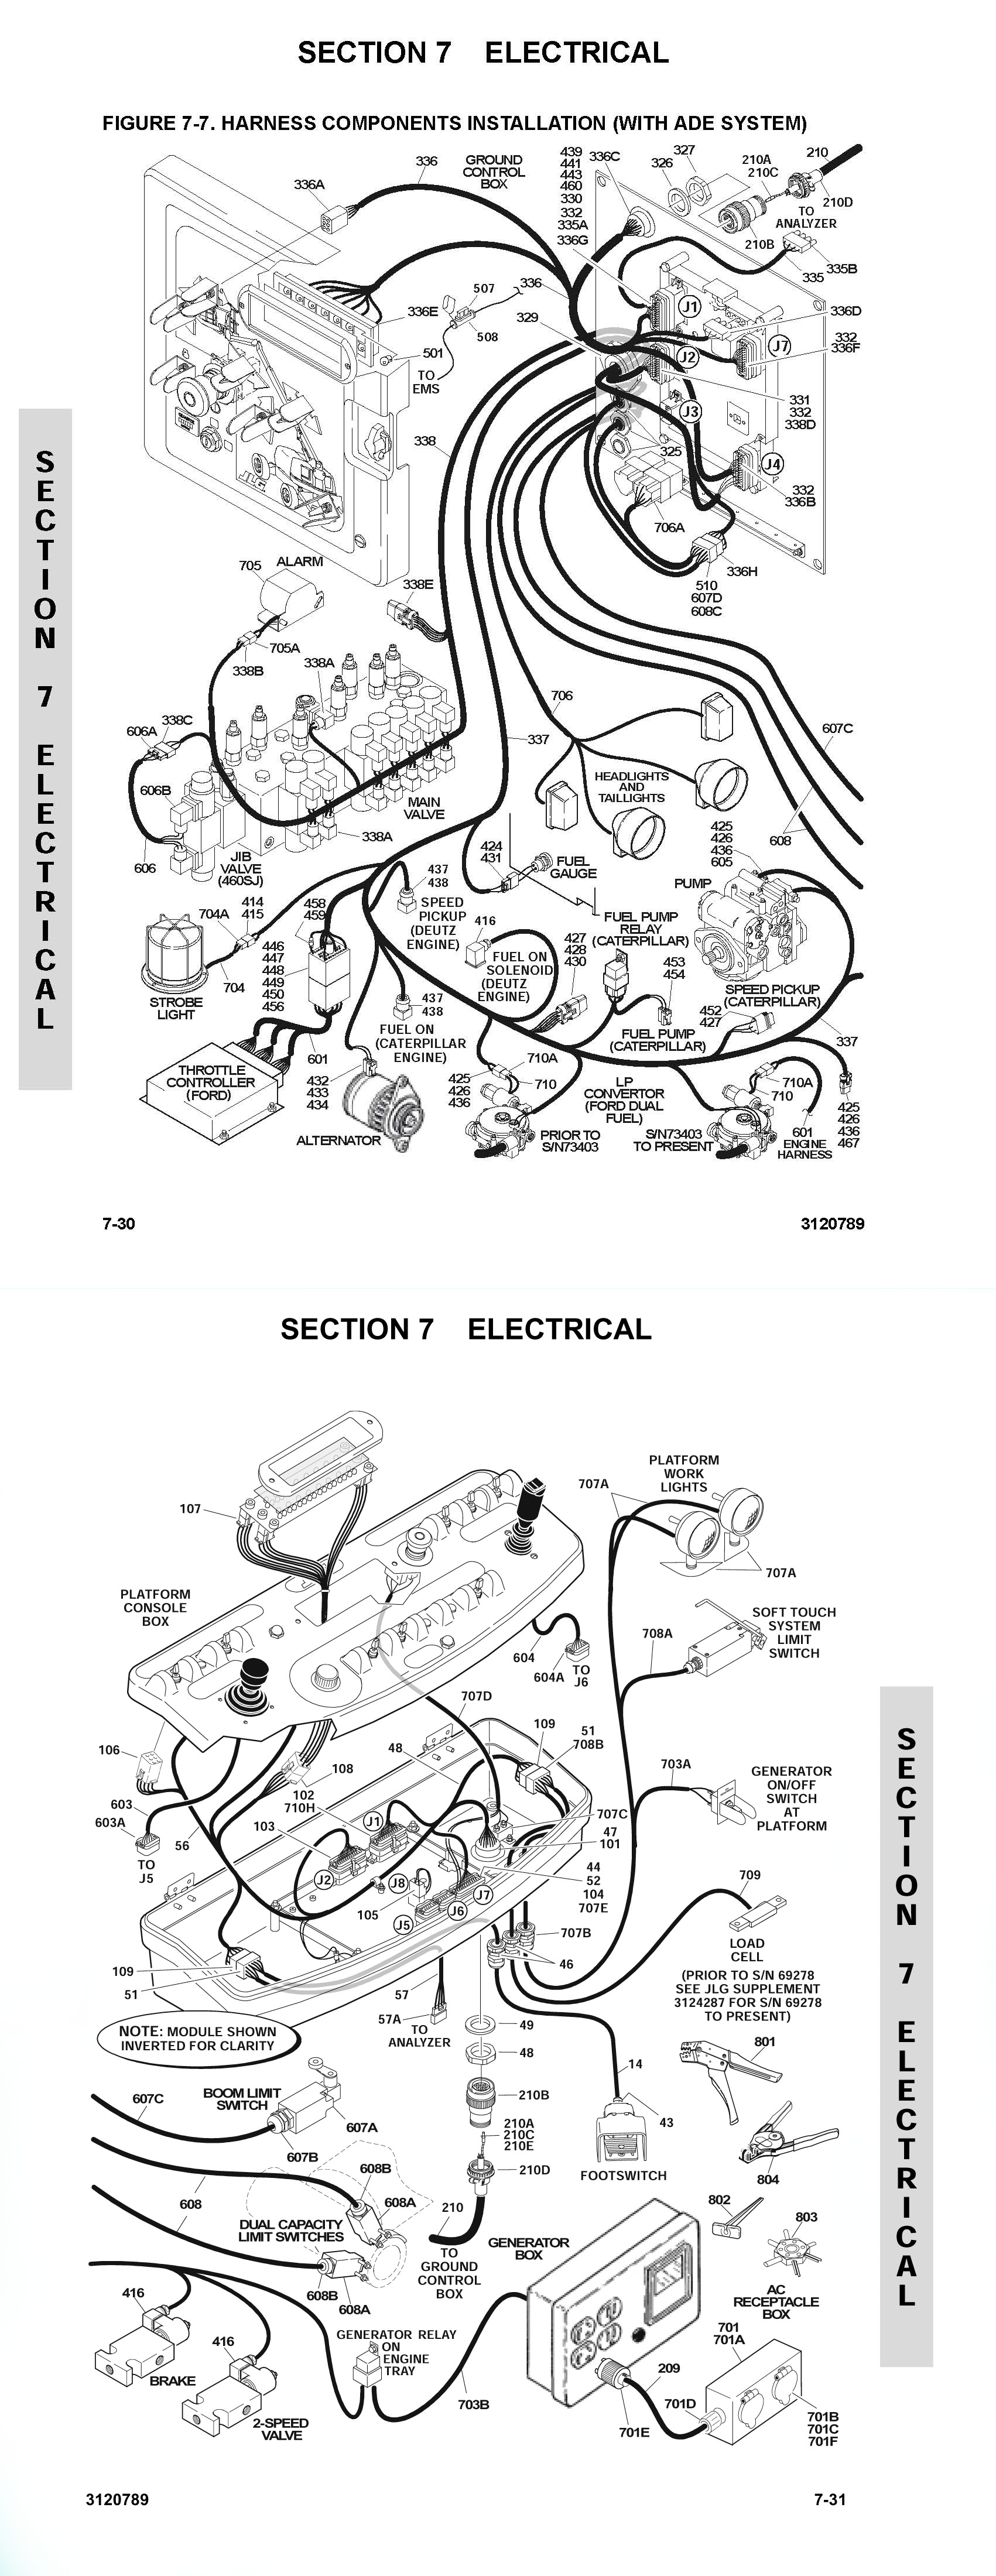 2006 mazda miata electrical diagram